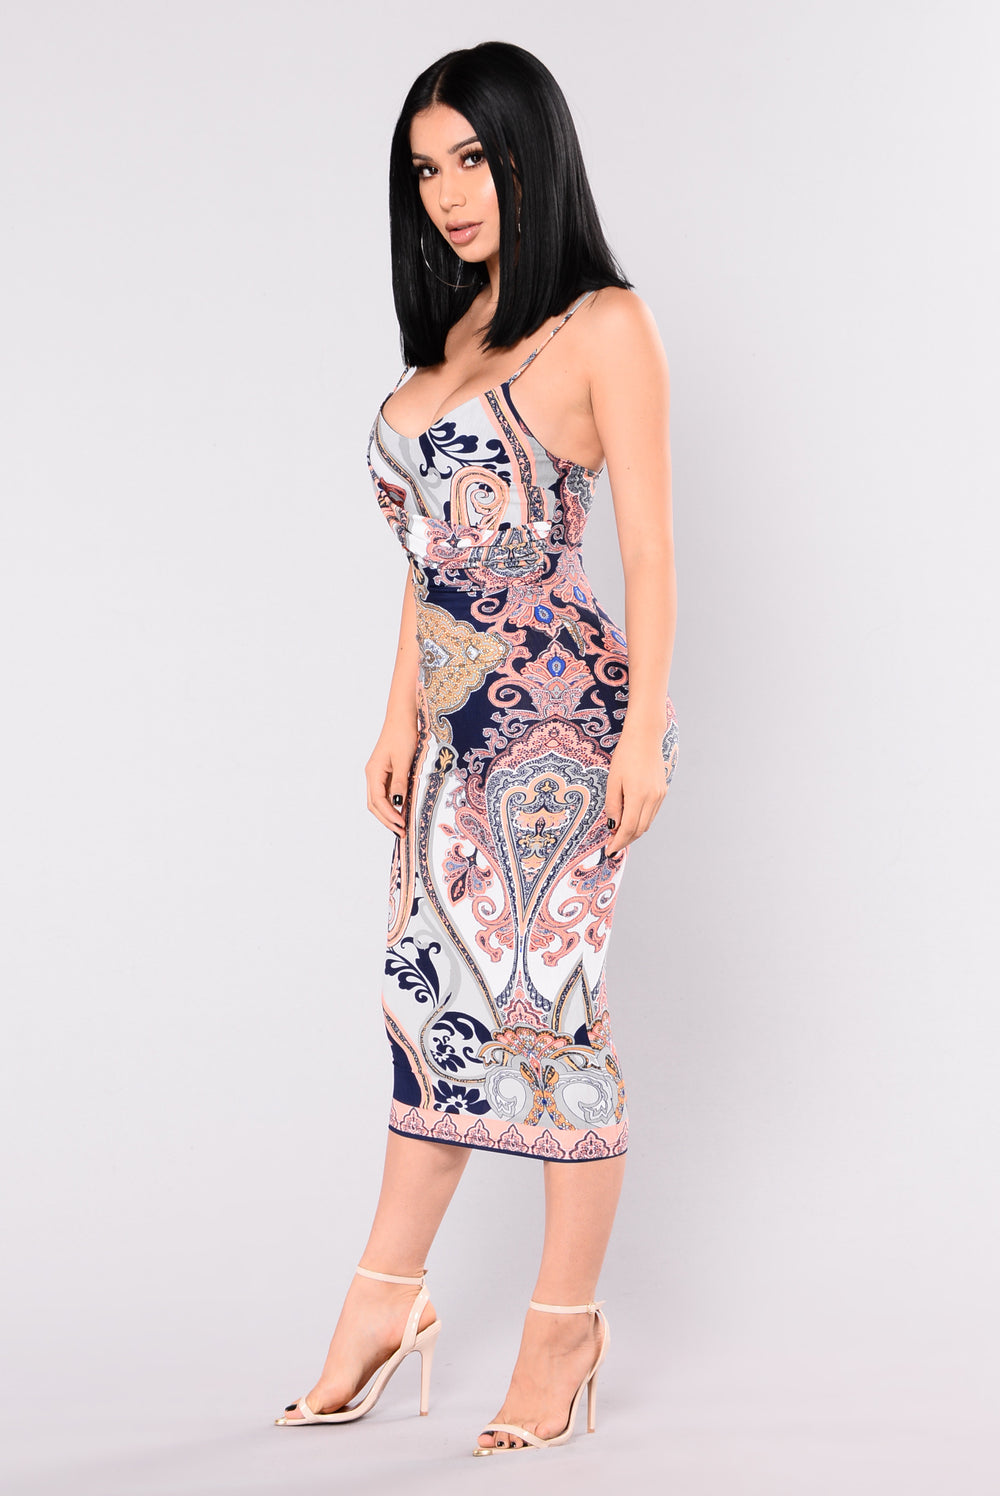 Bettina Pasely Dress - Navy